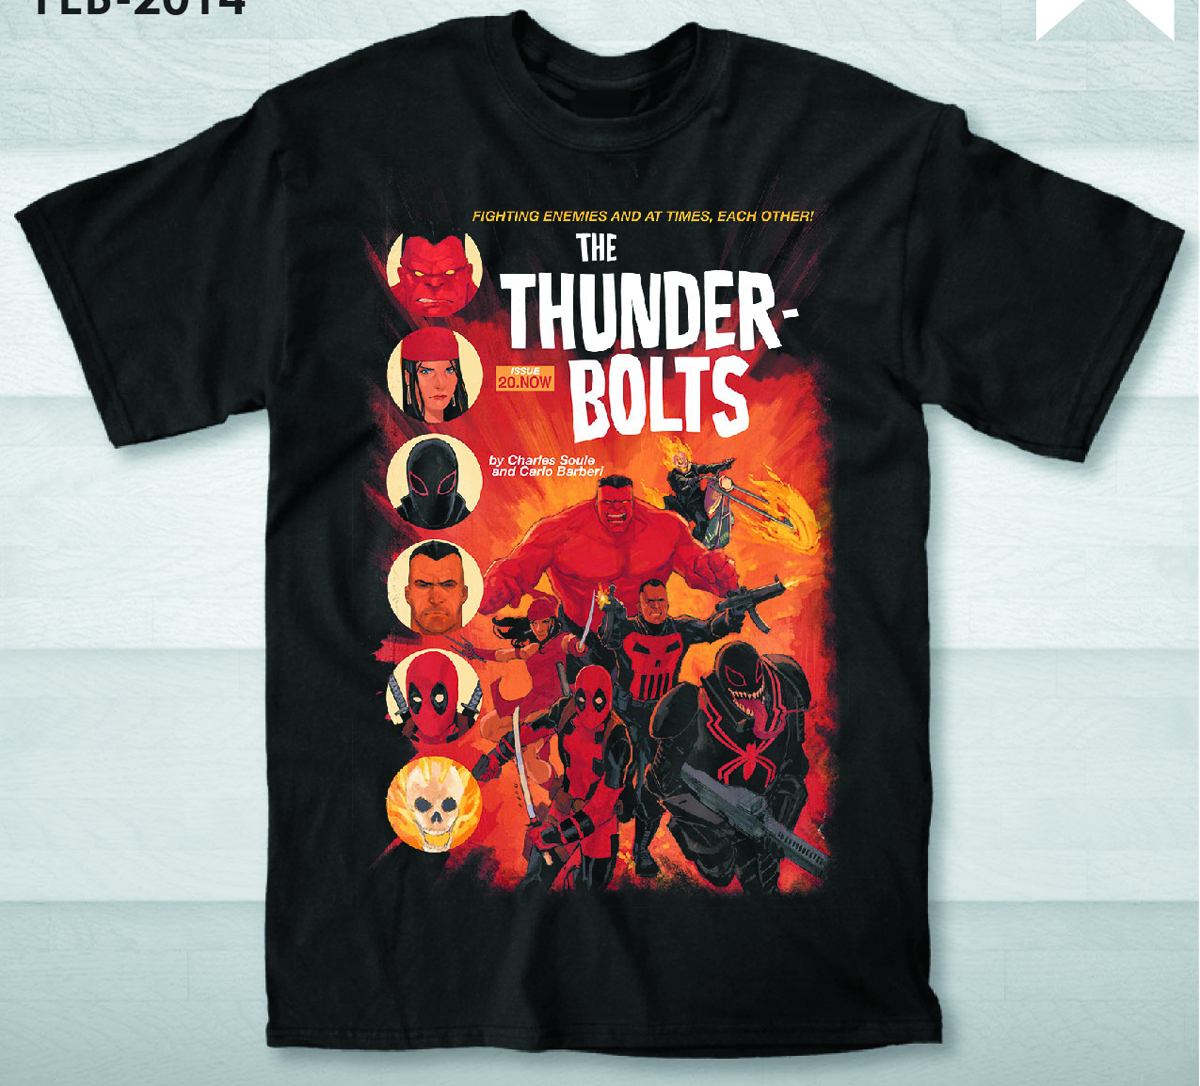 THUNDERBOLTS PX BLK T/S SM